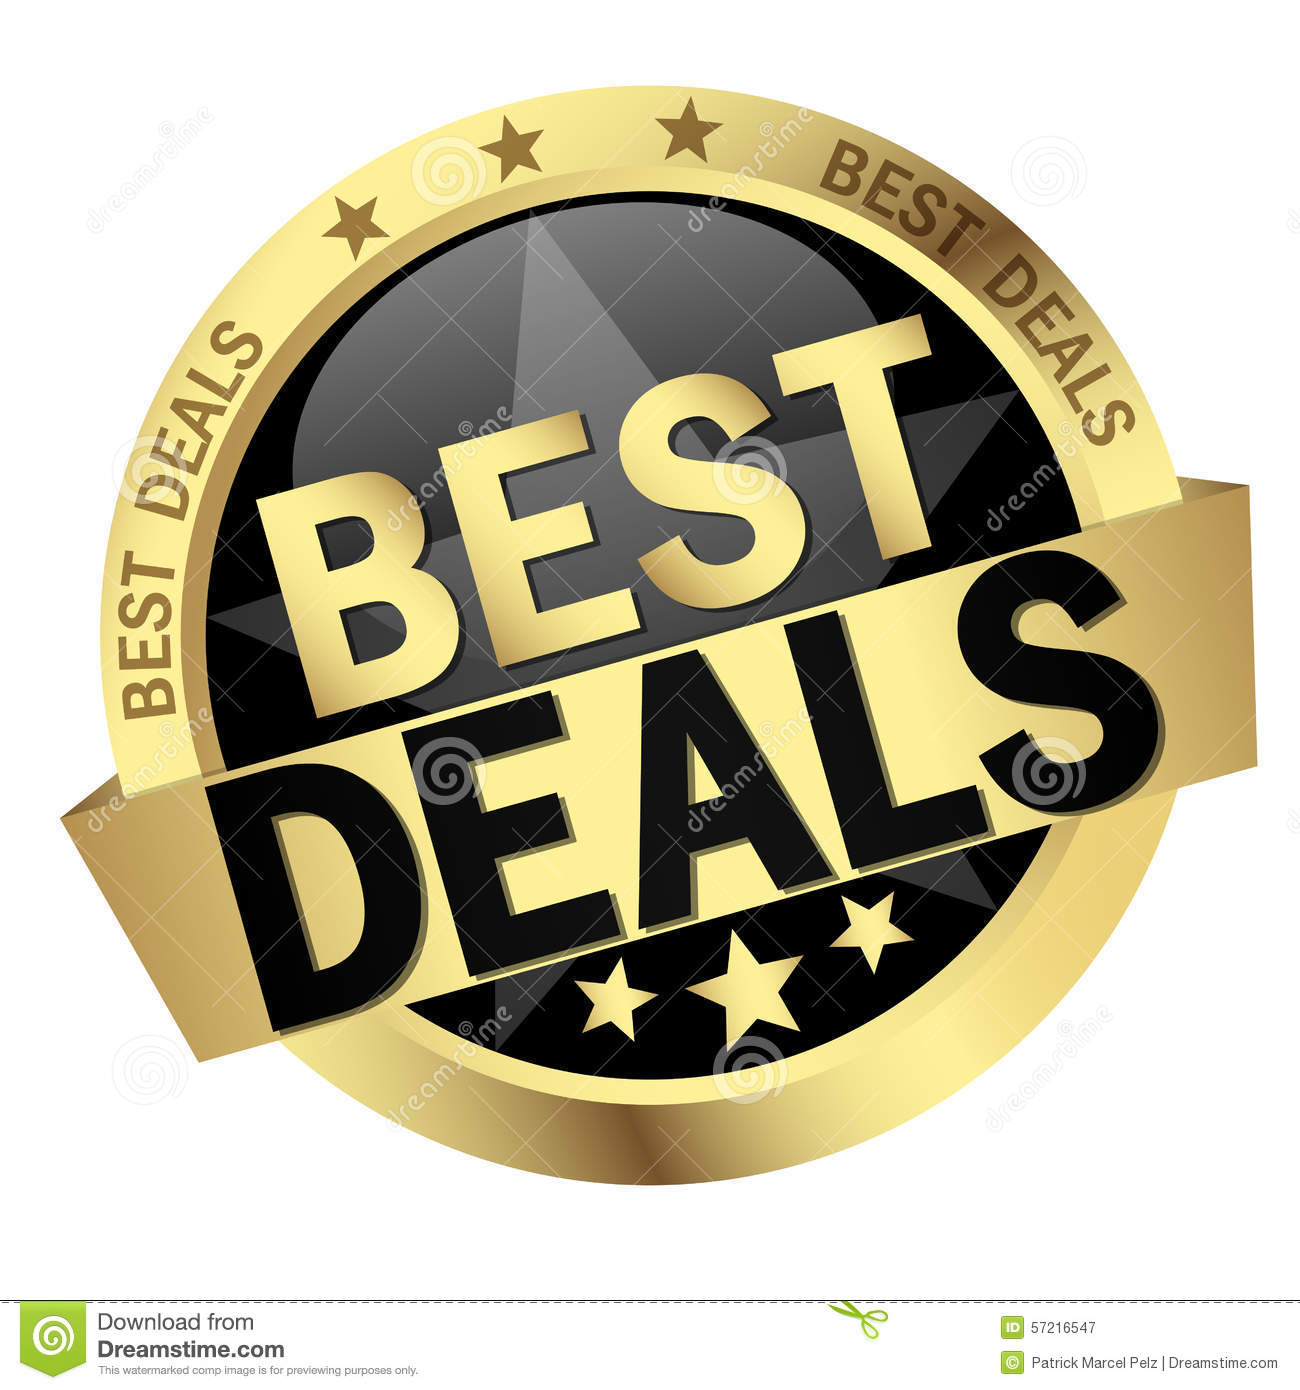 Round Table Pizza Coupon Codes, Promos & Sales. Want the best Round Table Pizza coupon codes and sales as soon as they're released? Then follow this link to the homepage to check for the latest deals.